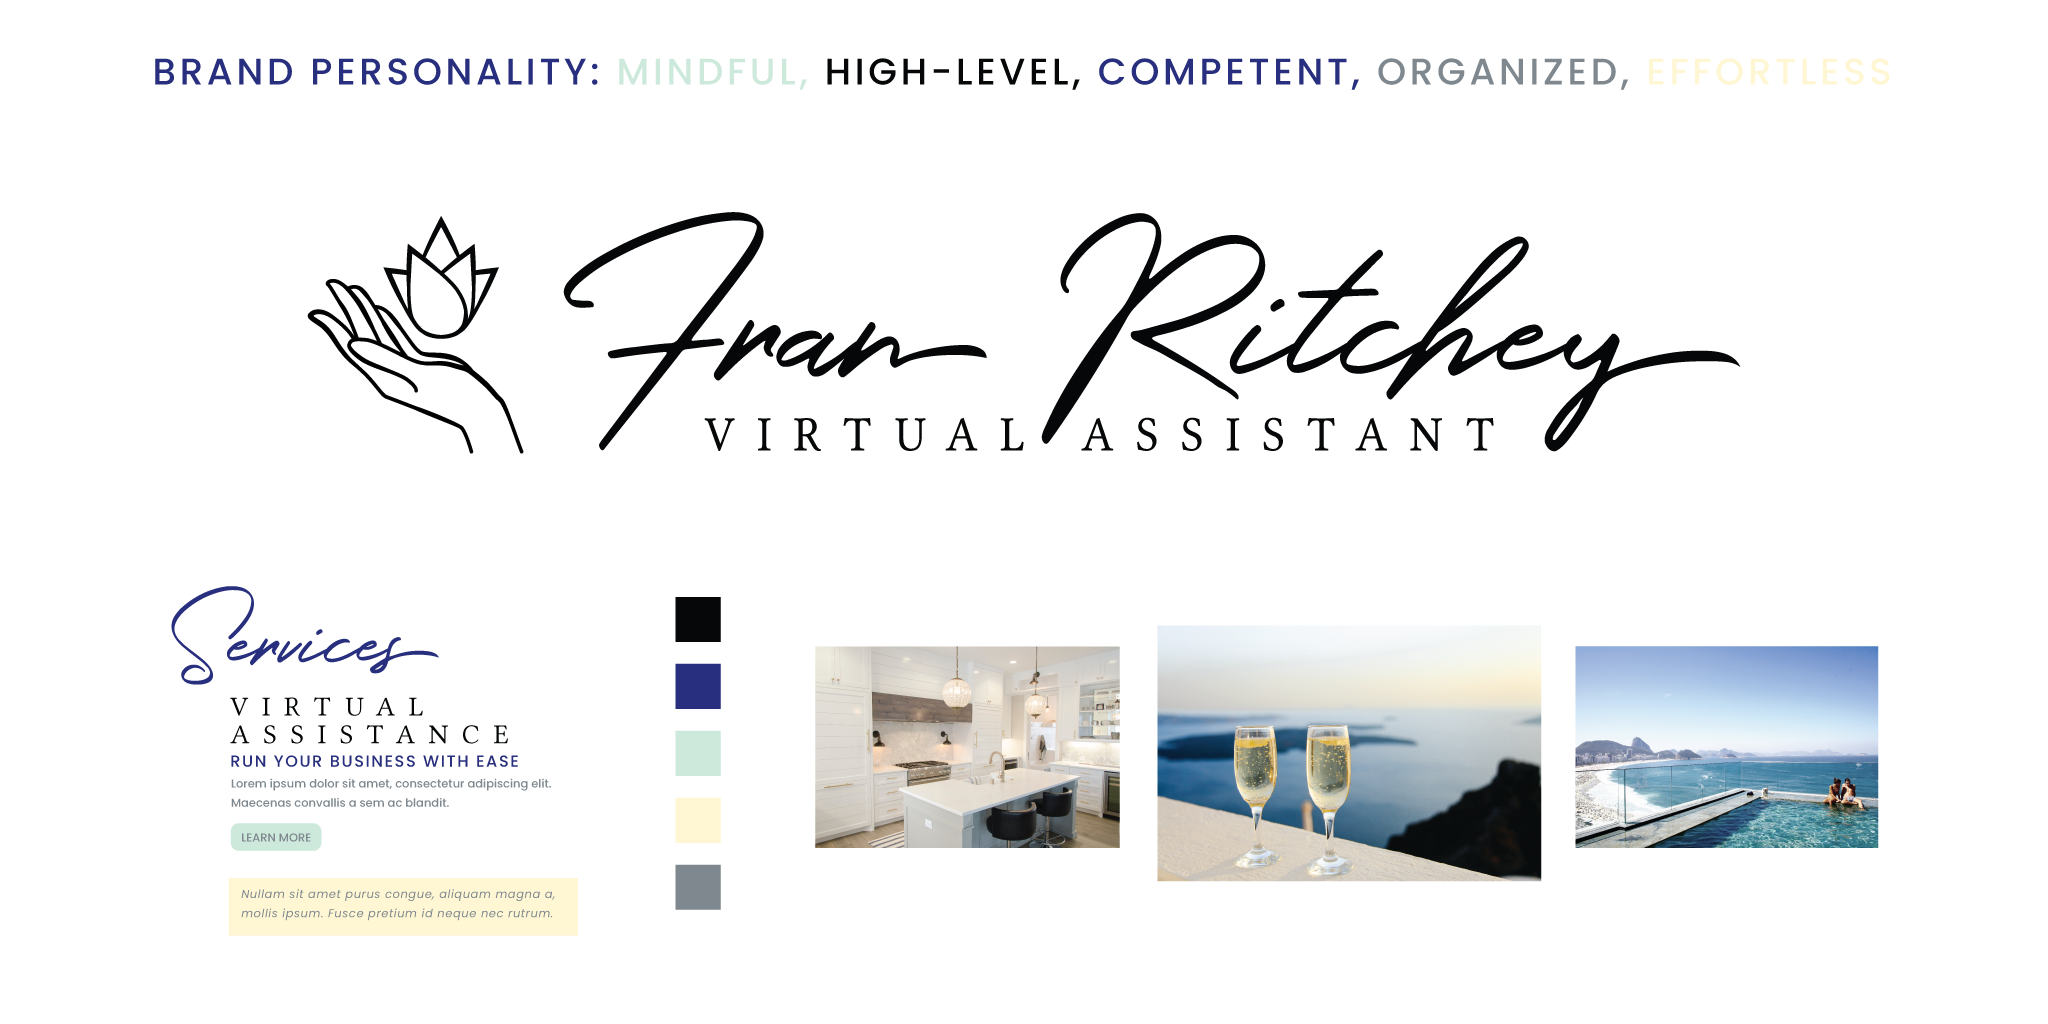 A brand board for a virtual assistant with brand personality, logo, fonts, color palette, and photos